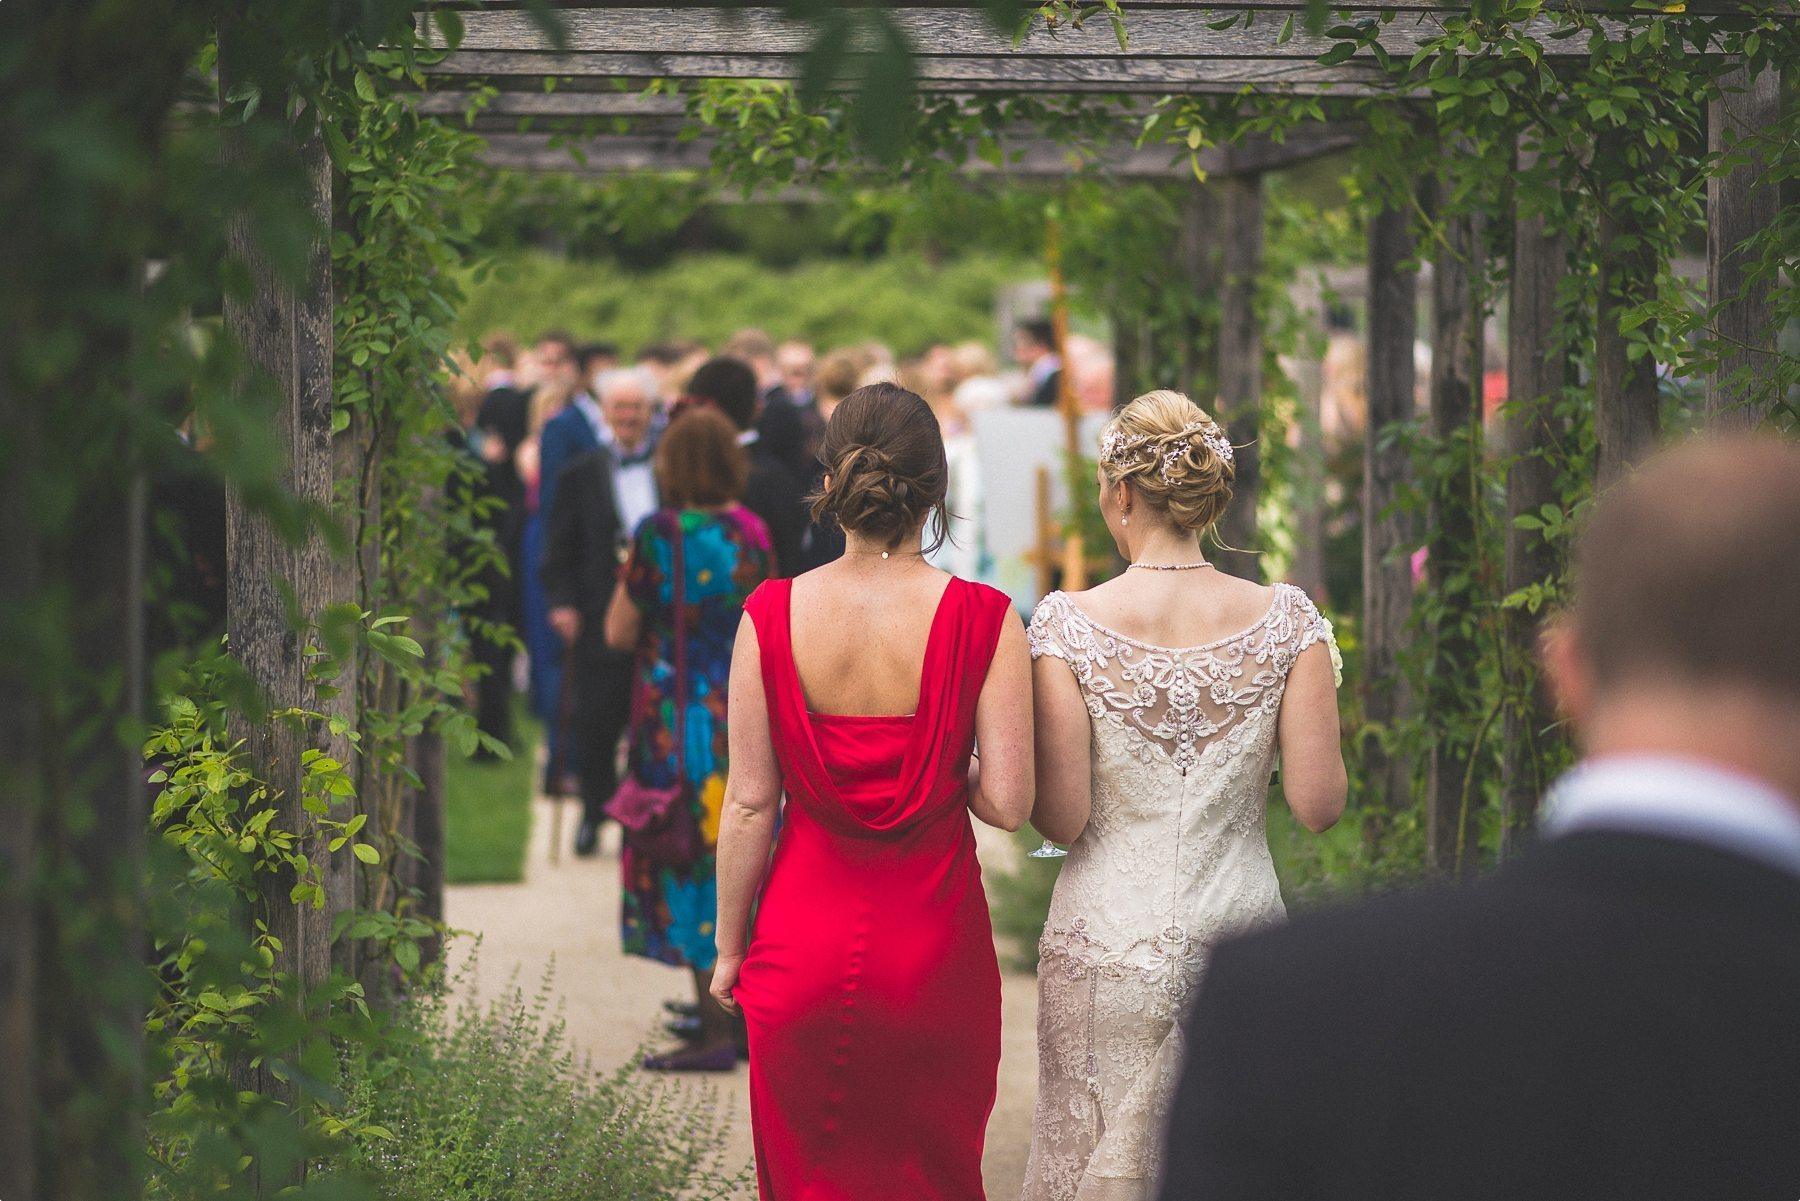 Bride and bridesmaid walking through the grounds at her Coworth Park Barn Summer wedding to join the other guests